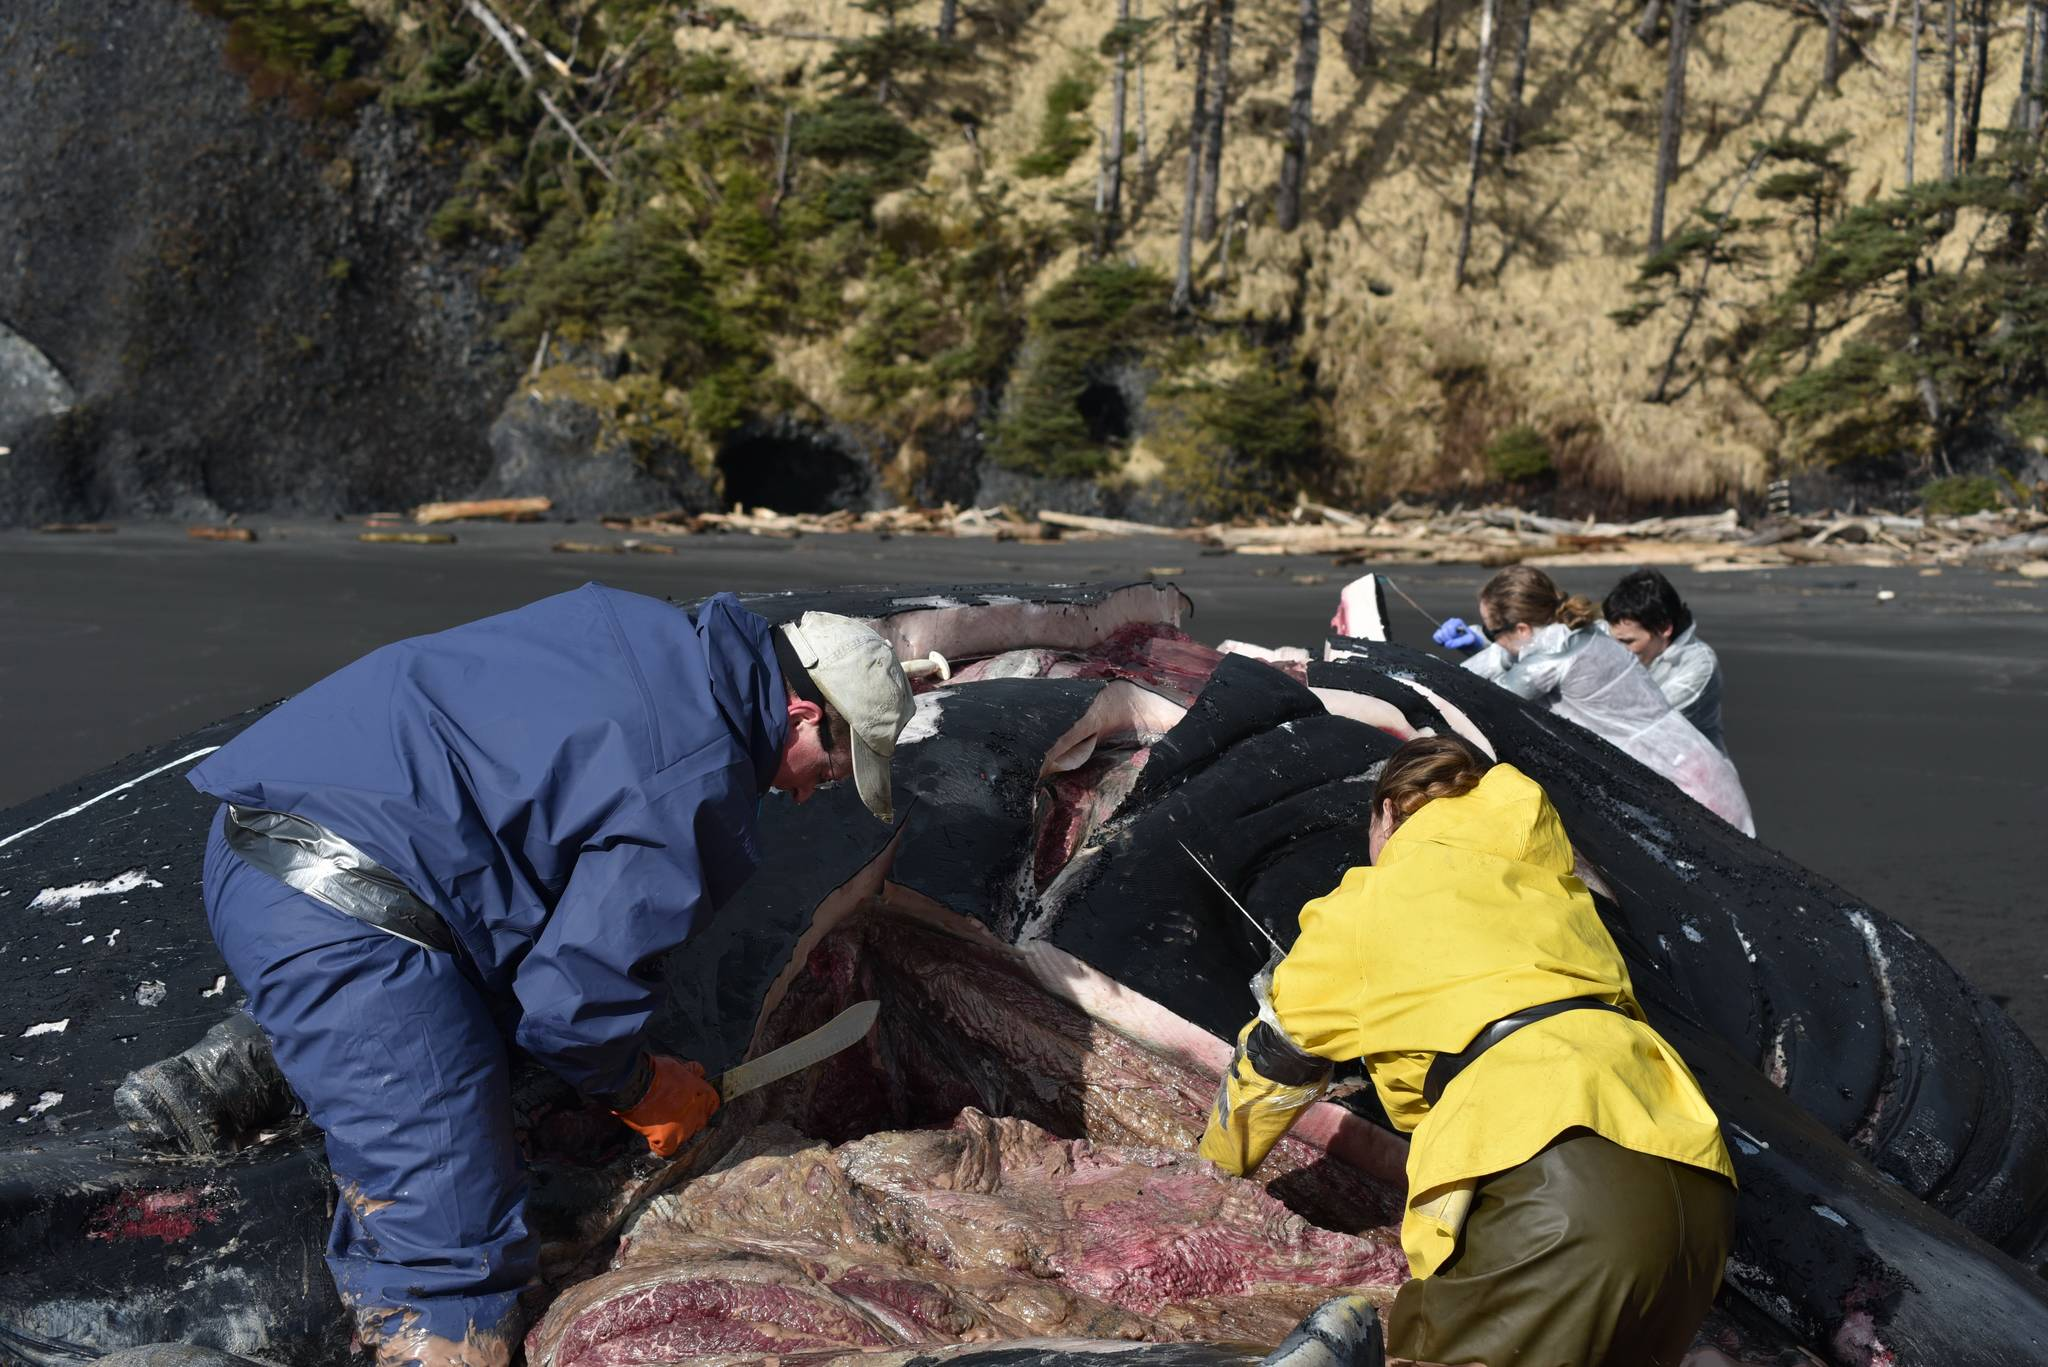 Volunteers with the Alaska Marine Mammal Stranding Network perform a necropsy on a beached humpback whale on Kuzof Island on Thursday, March 18, 2021. (Courtesy photo / Alaska Marine Mammal Stranding Network)